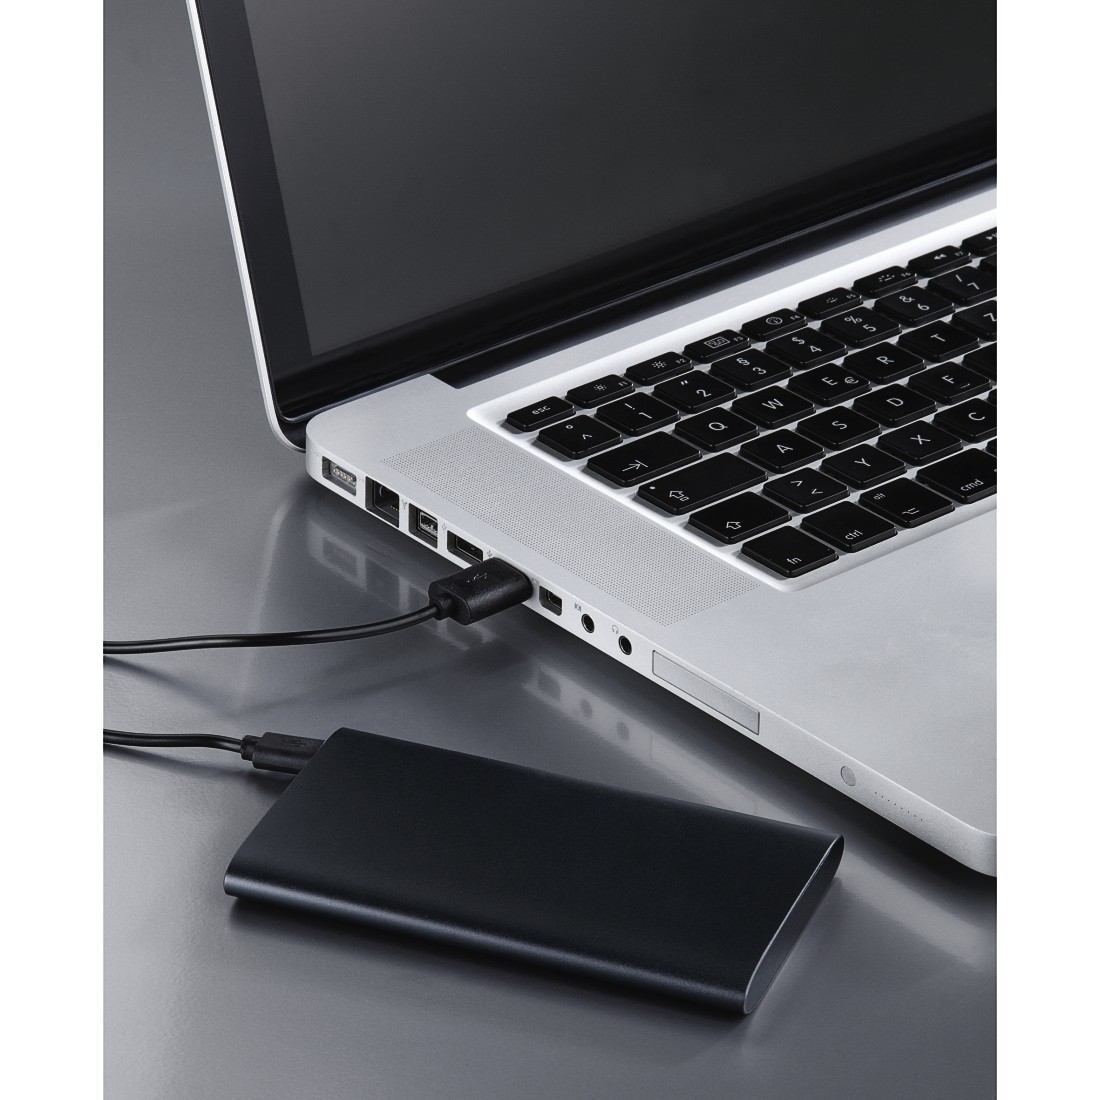 awx2 High-Res Appliance 2 - Hama, Power Pack Premium Alu, 5 000 mAh, anthracite